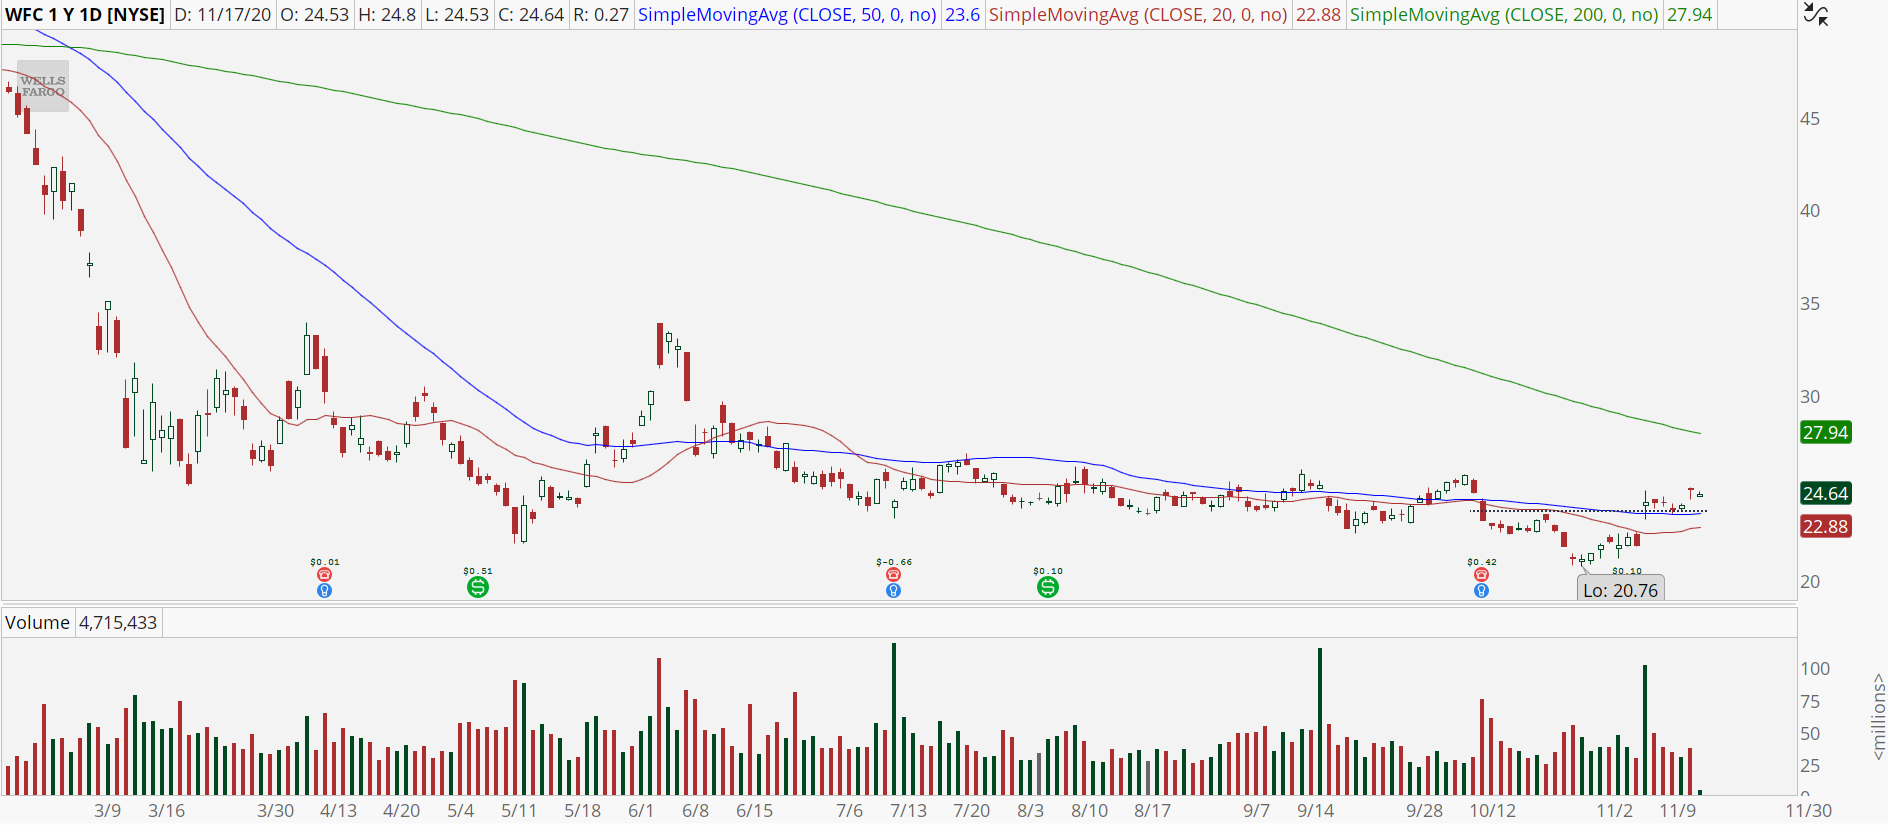 Wells Fargo (WFC) chart showing bullish trend reversal